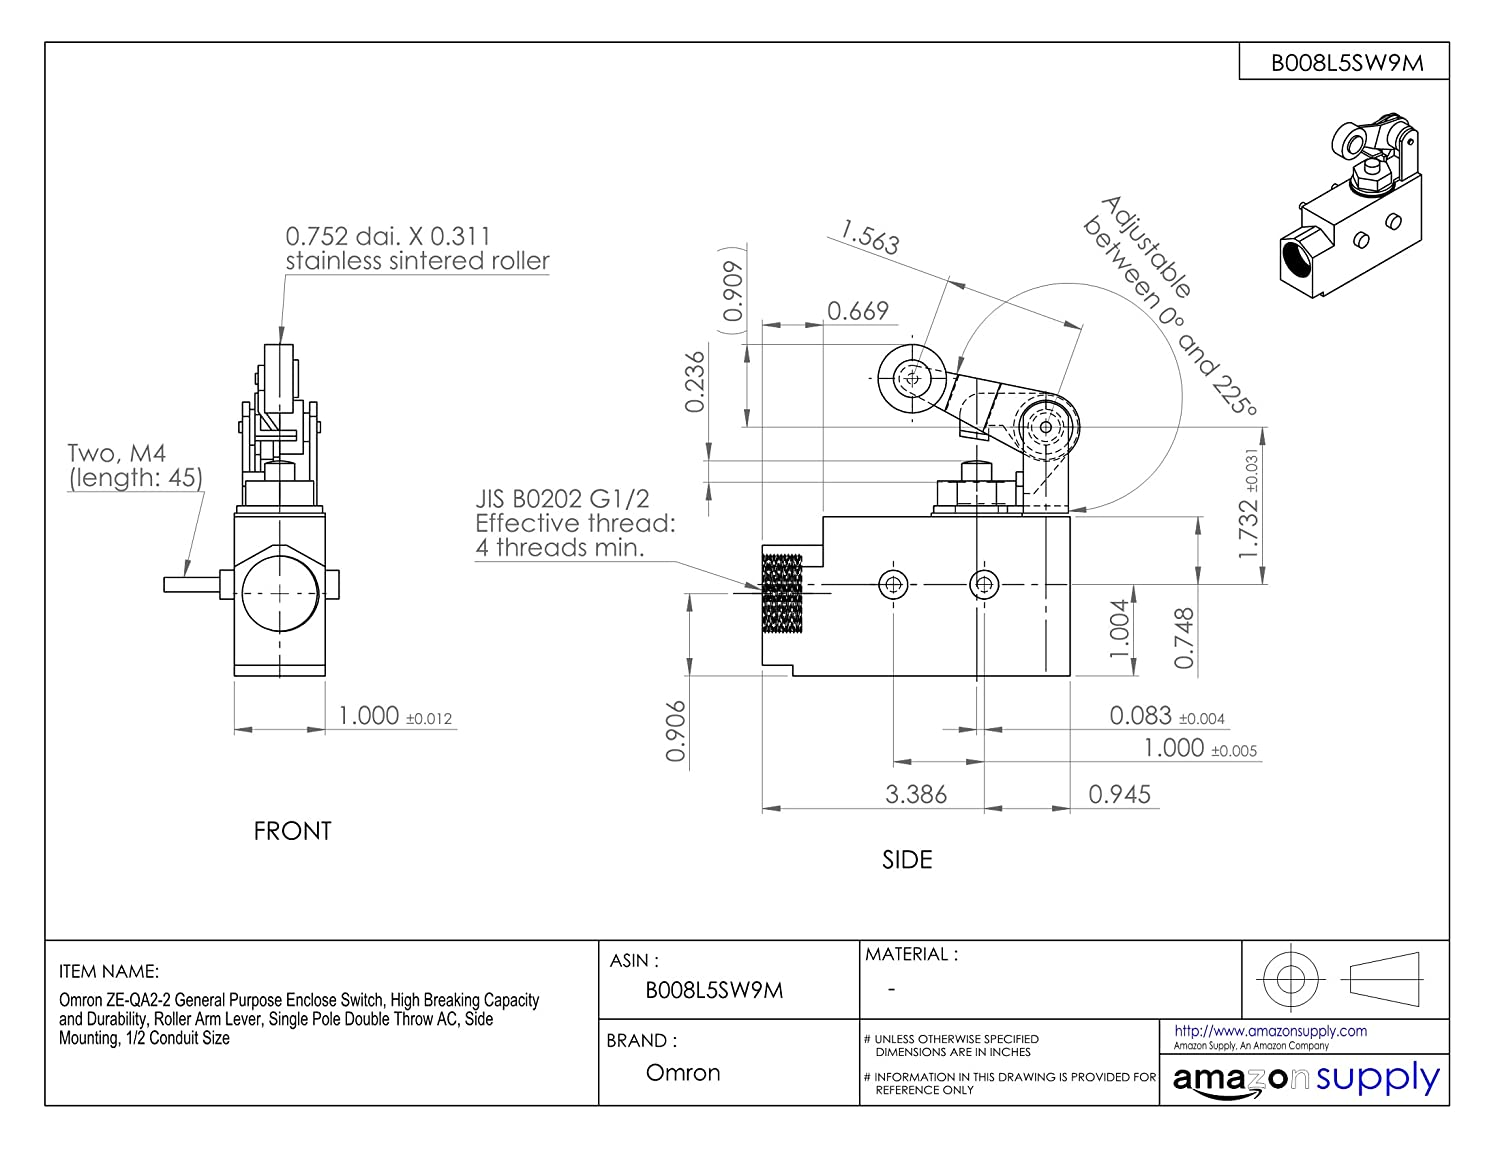 Omron Ze Qa2 2 General Purpose Enclose Switch High Breaking Single Pole Double Throw Limit Wiring Diagram Capacity And Durability Roller Arm Lever Ac Side Mounting